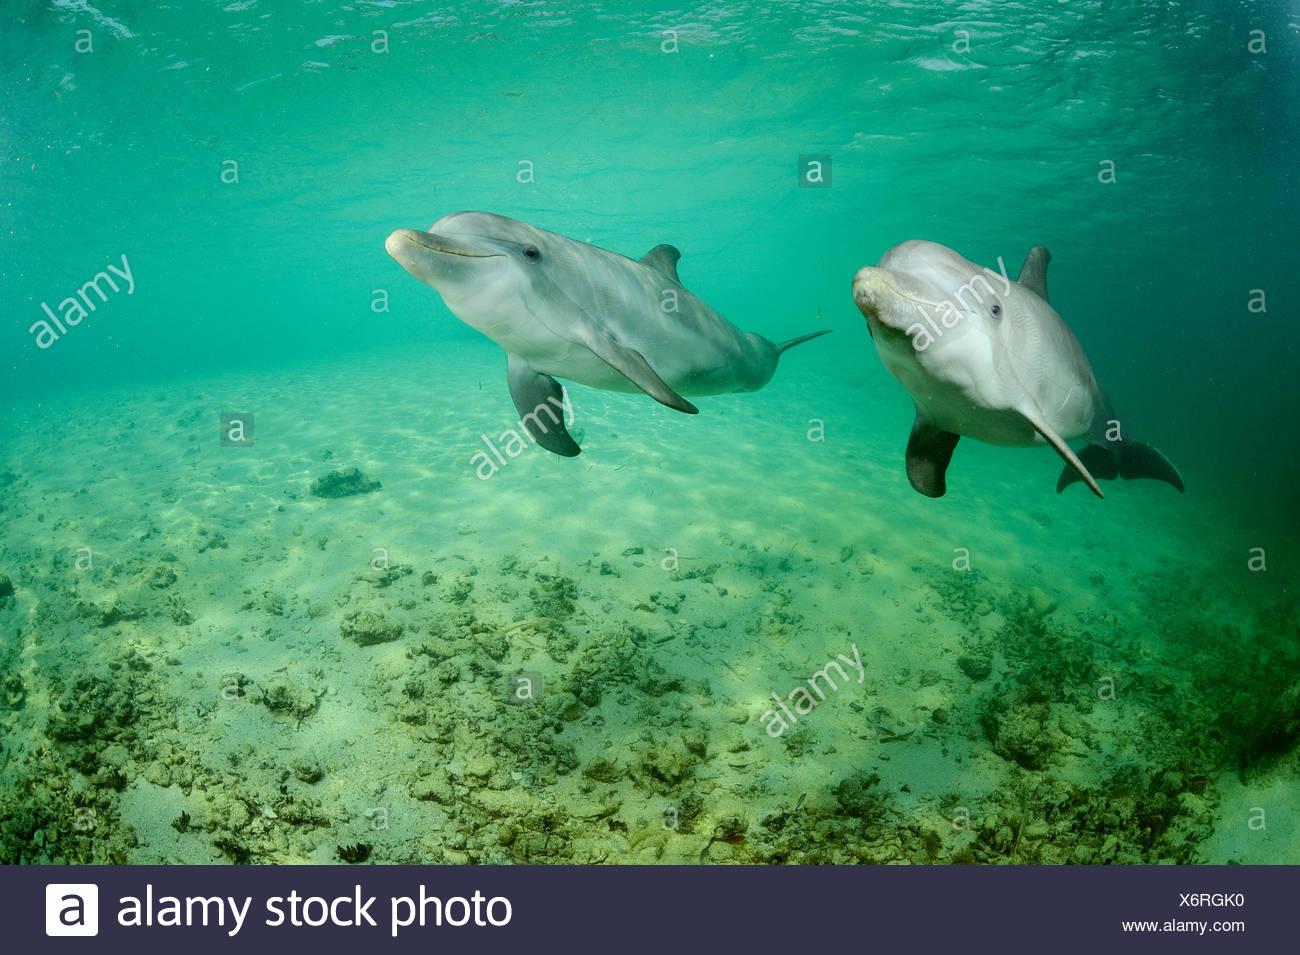 Bottlenose dolphins exhibit tandem behavior at the Roatan Institute for Marine Science at Anthony's Key Resort in Honduras. - Stock Image